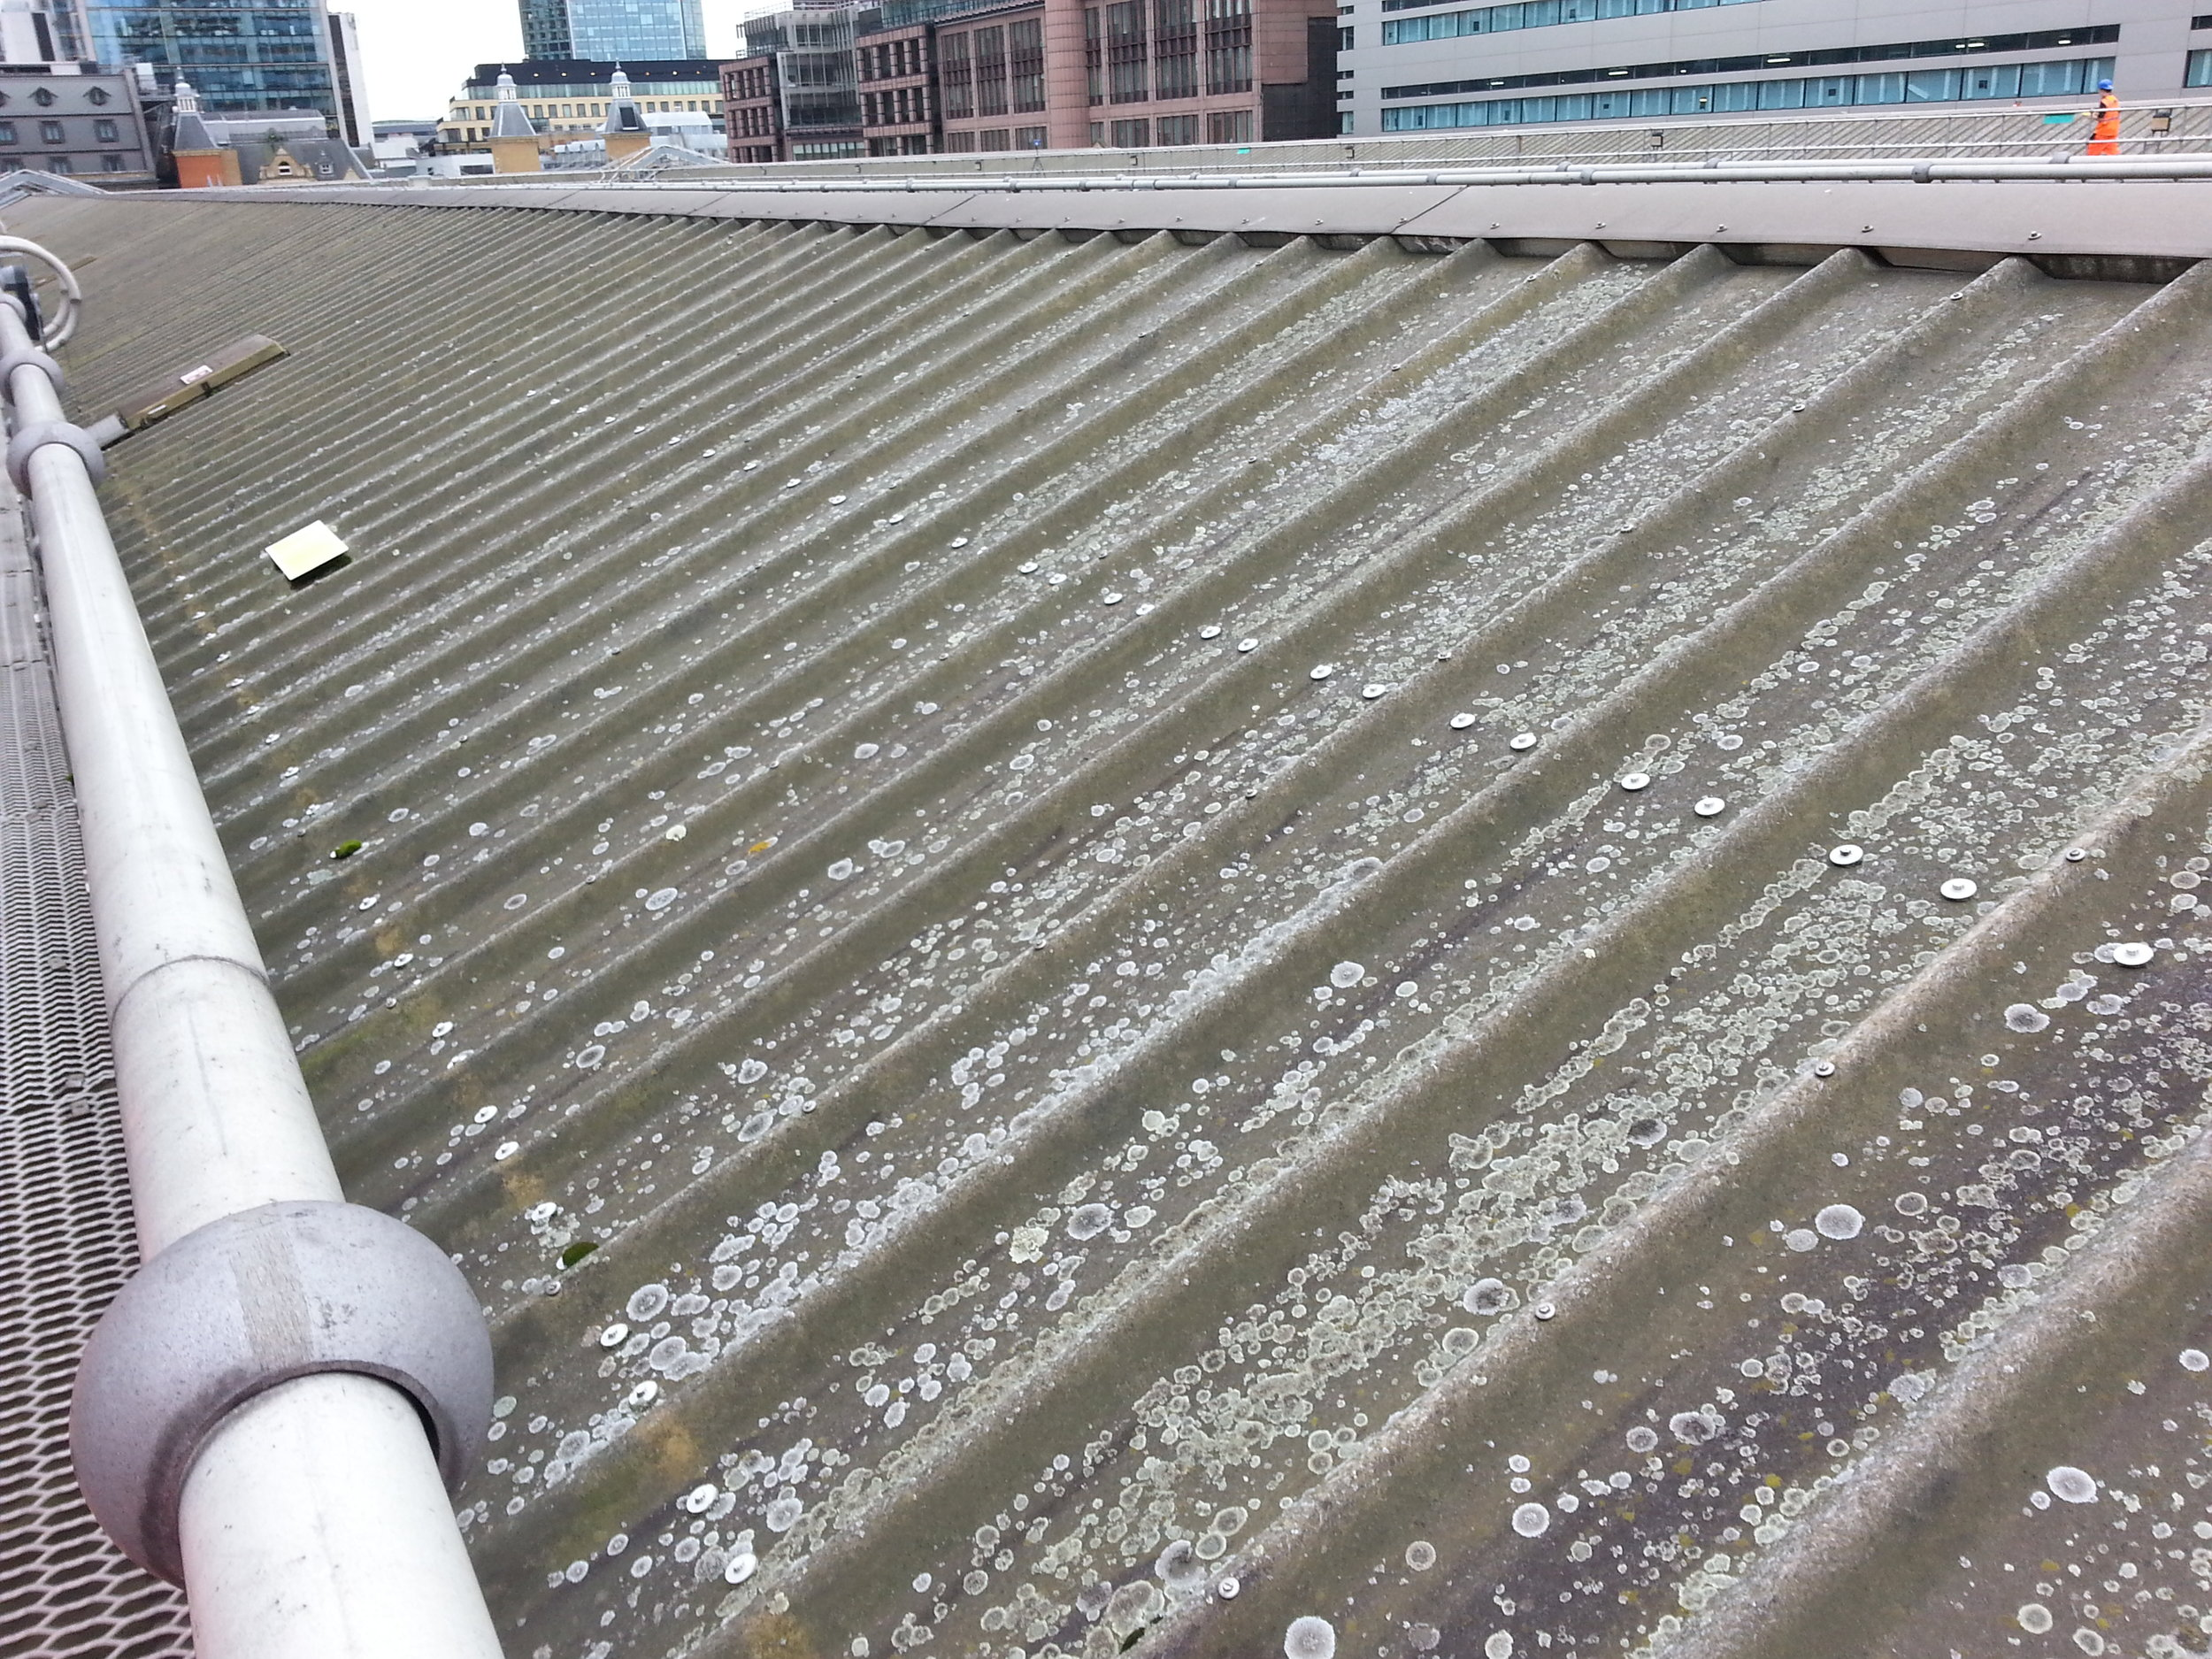 Liverpool Street Station - Roof Survey 164.jpg